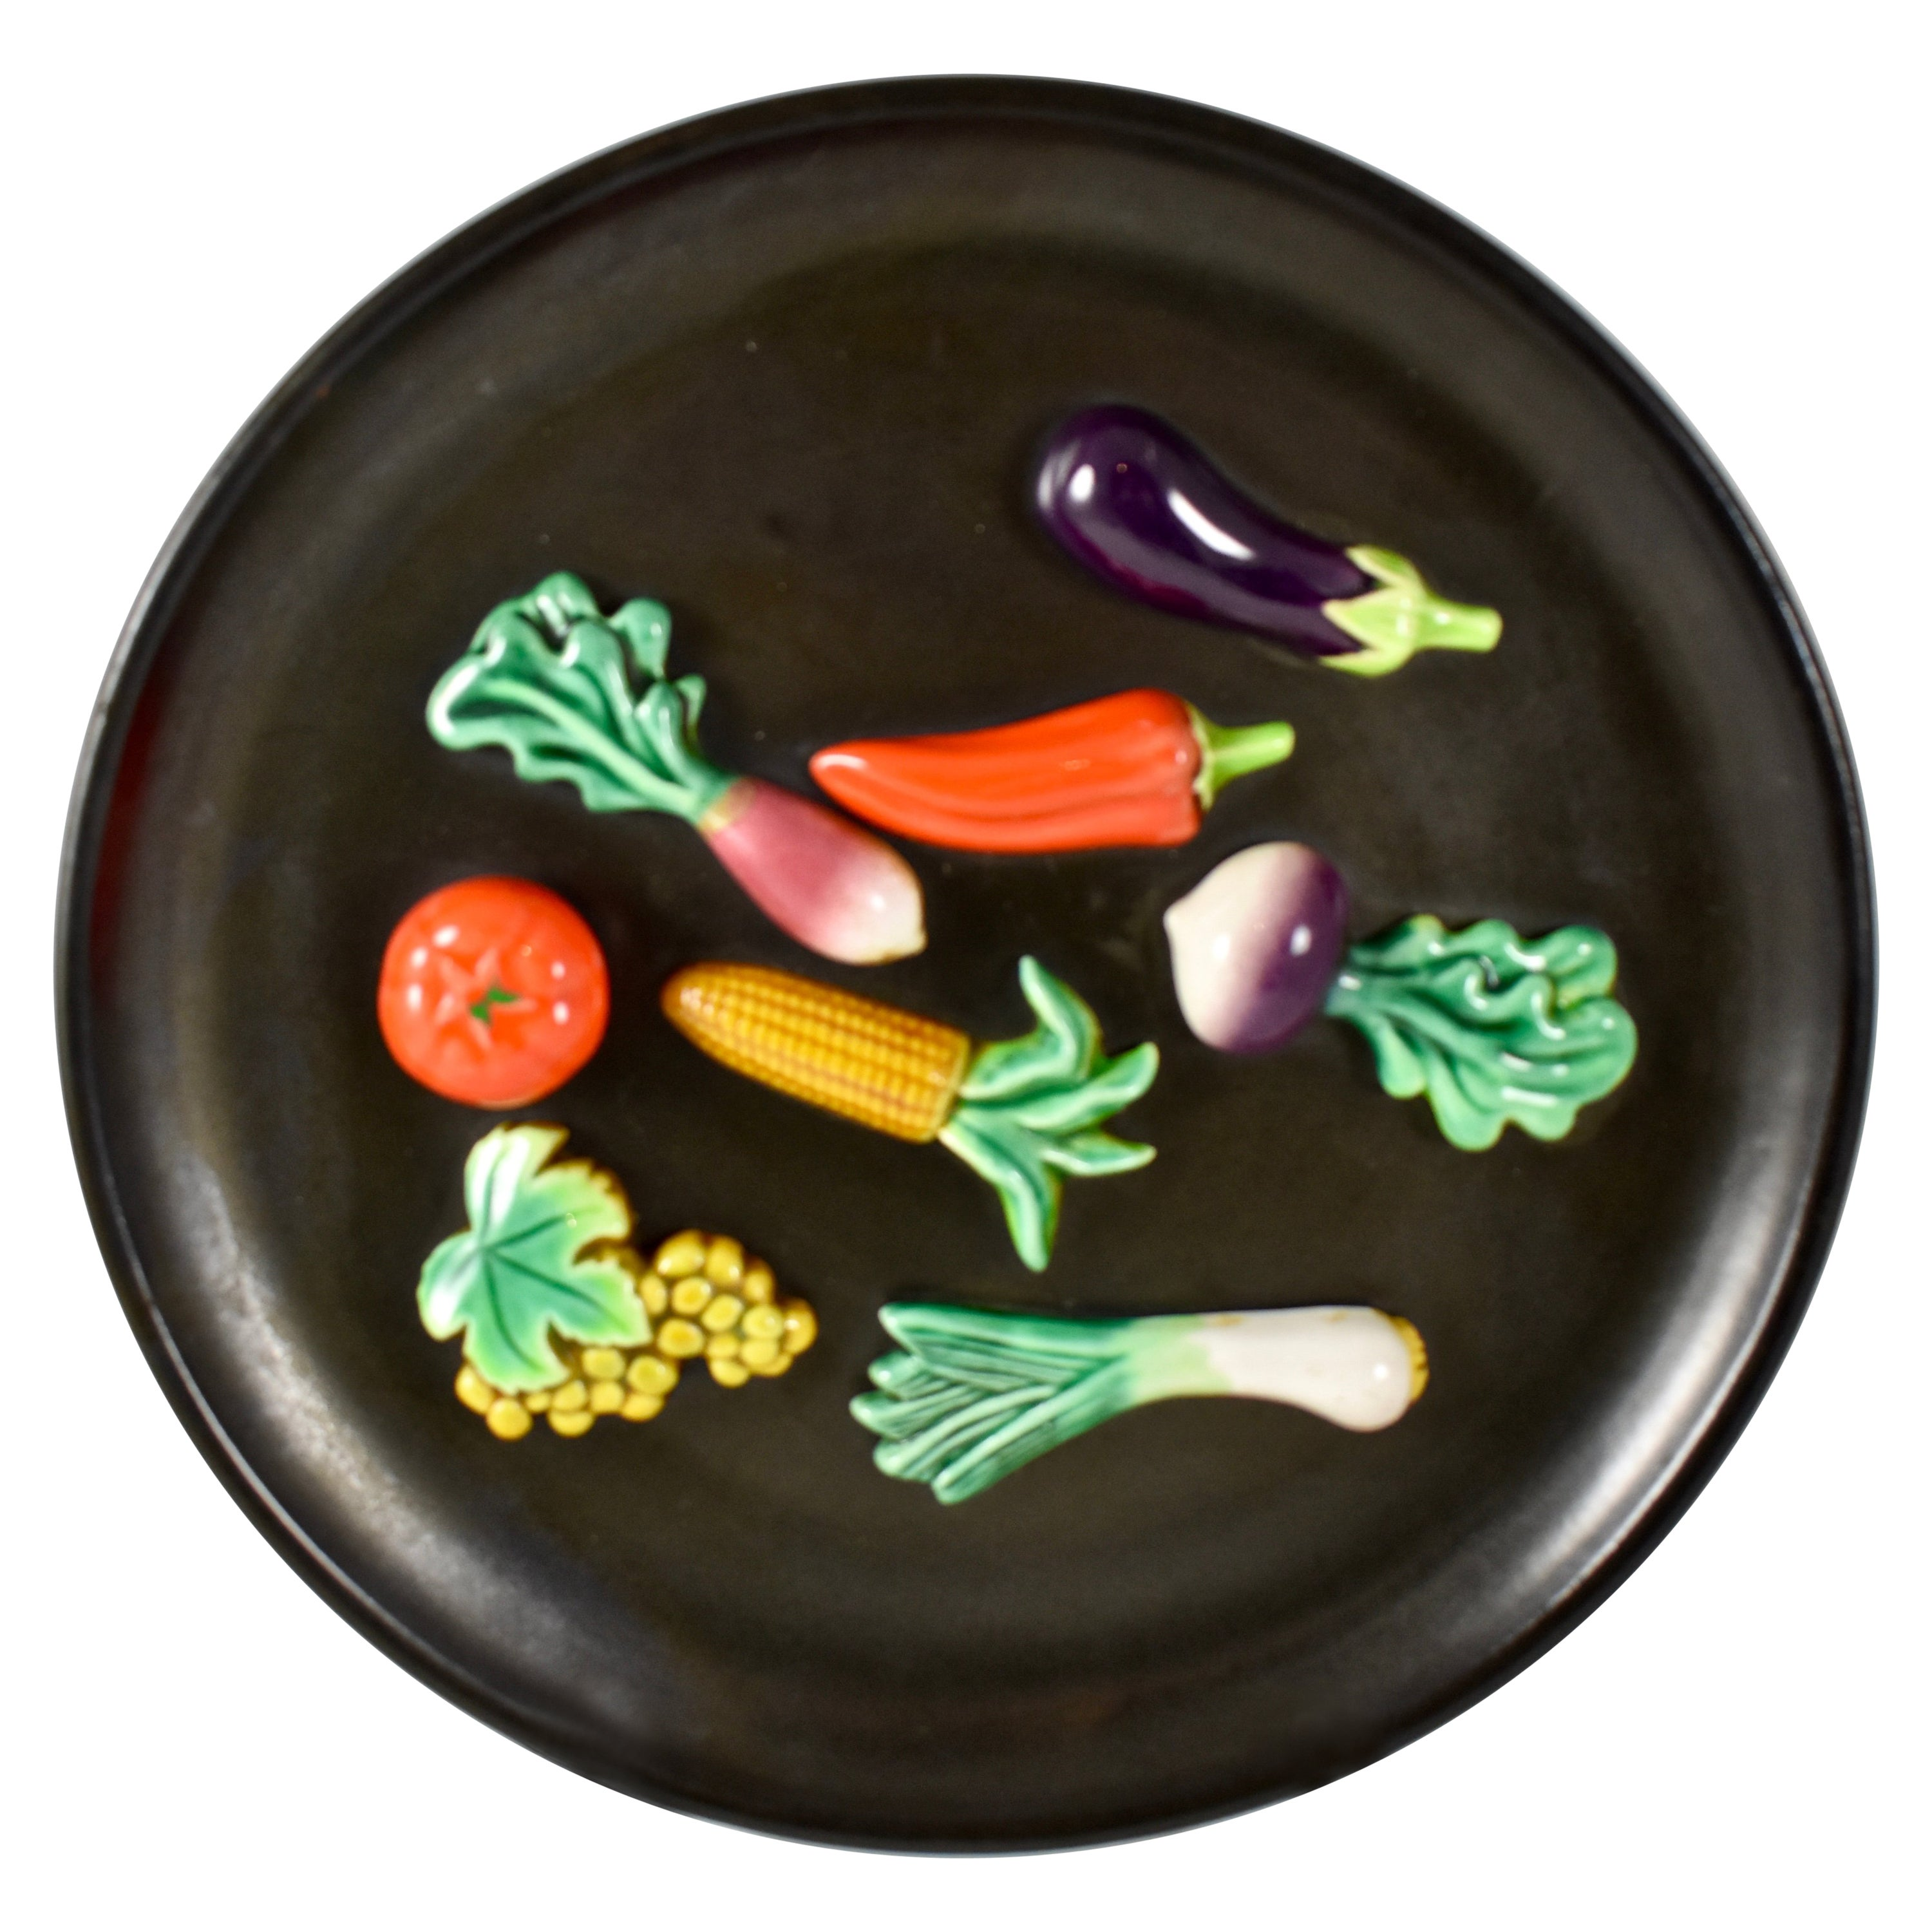 A.Martin Vallauris French Provençal Palissy Trompe L'oeil Vegetable Wall Plate